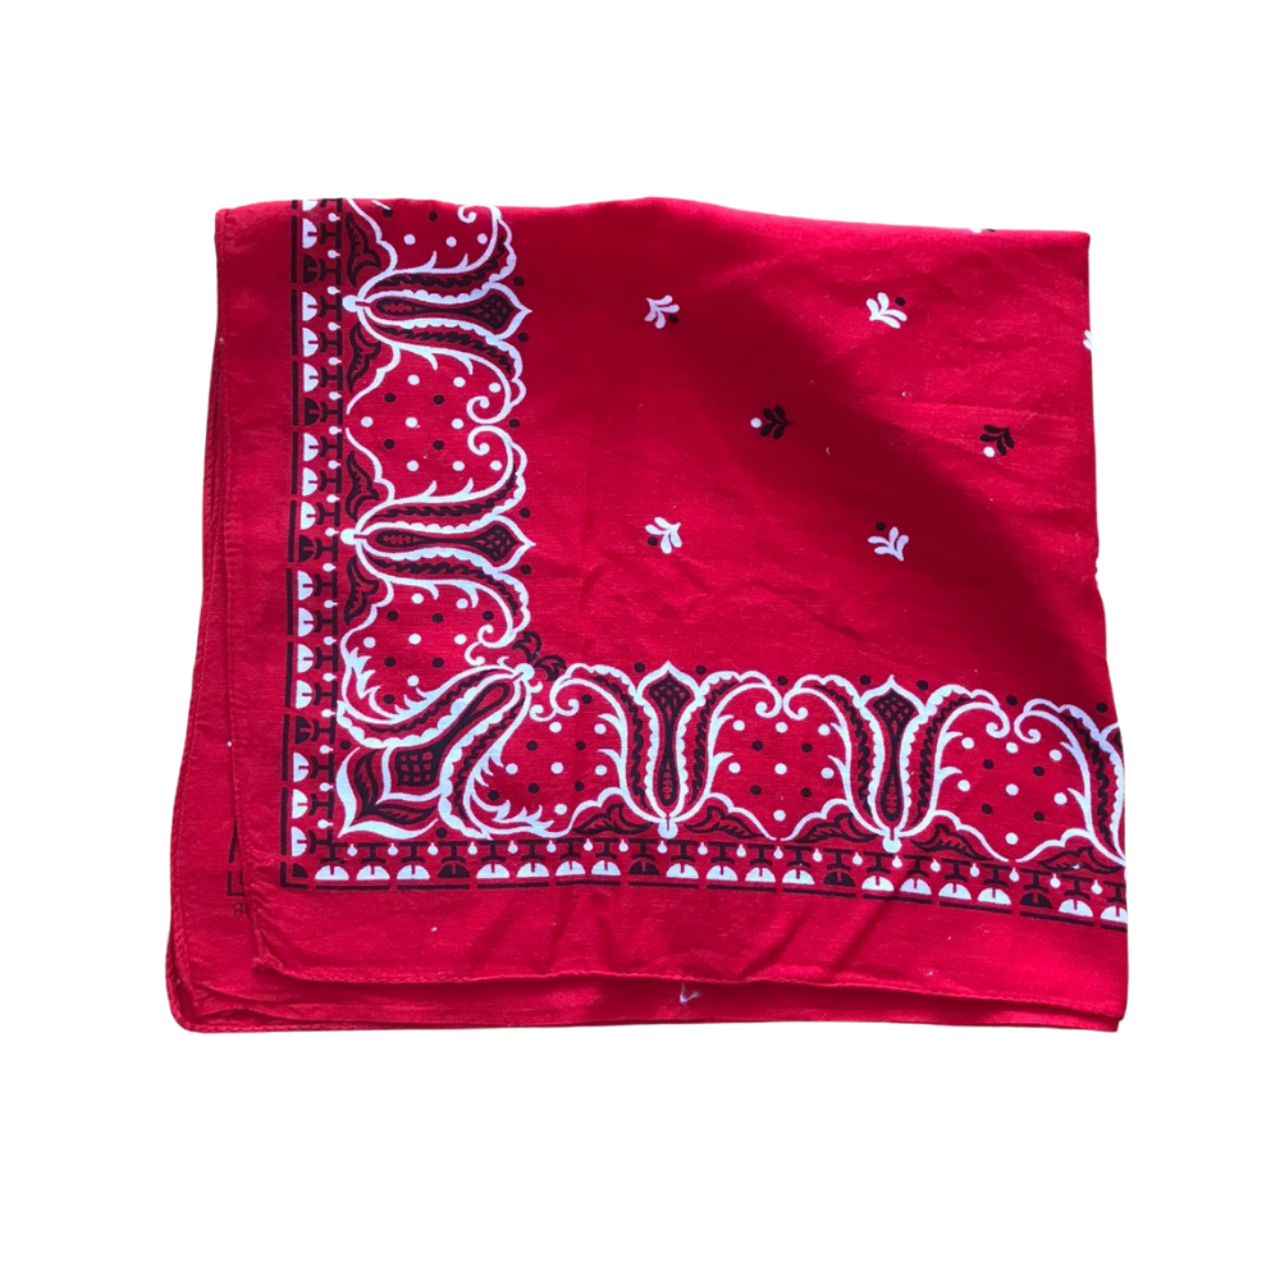 Product Image 1 - 1970s Vintage Red Paisley Patterned